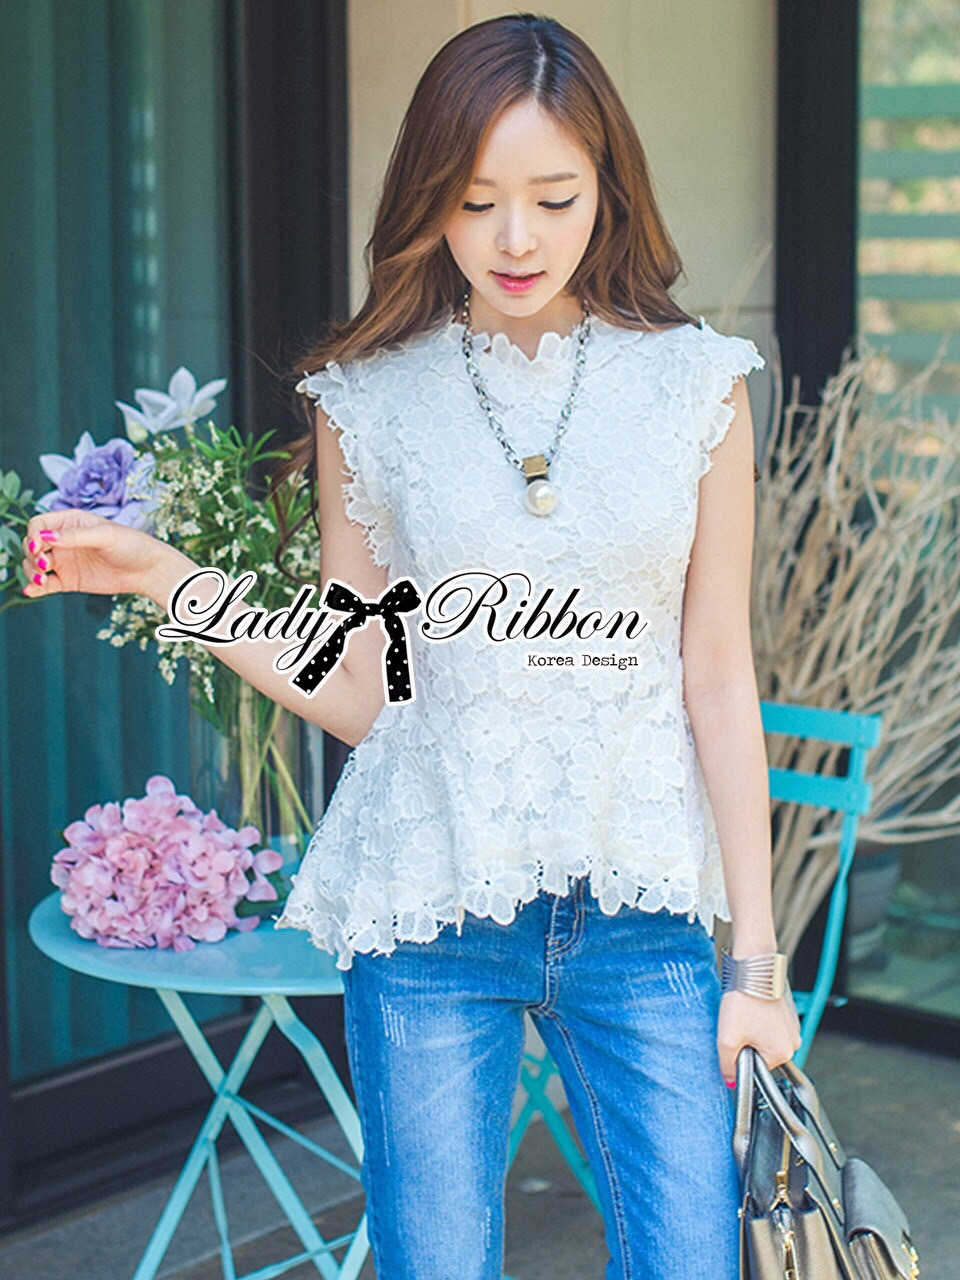 Lady Ribbon Korea Dress ผ้าลูกไม้ LR09200616 &#x1F380 Lady Ribbon's Made &#x1F380 Lady Nicole Classy Flared Sleeveless Lace Top